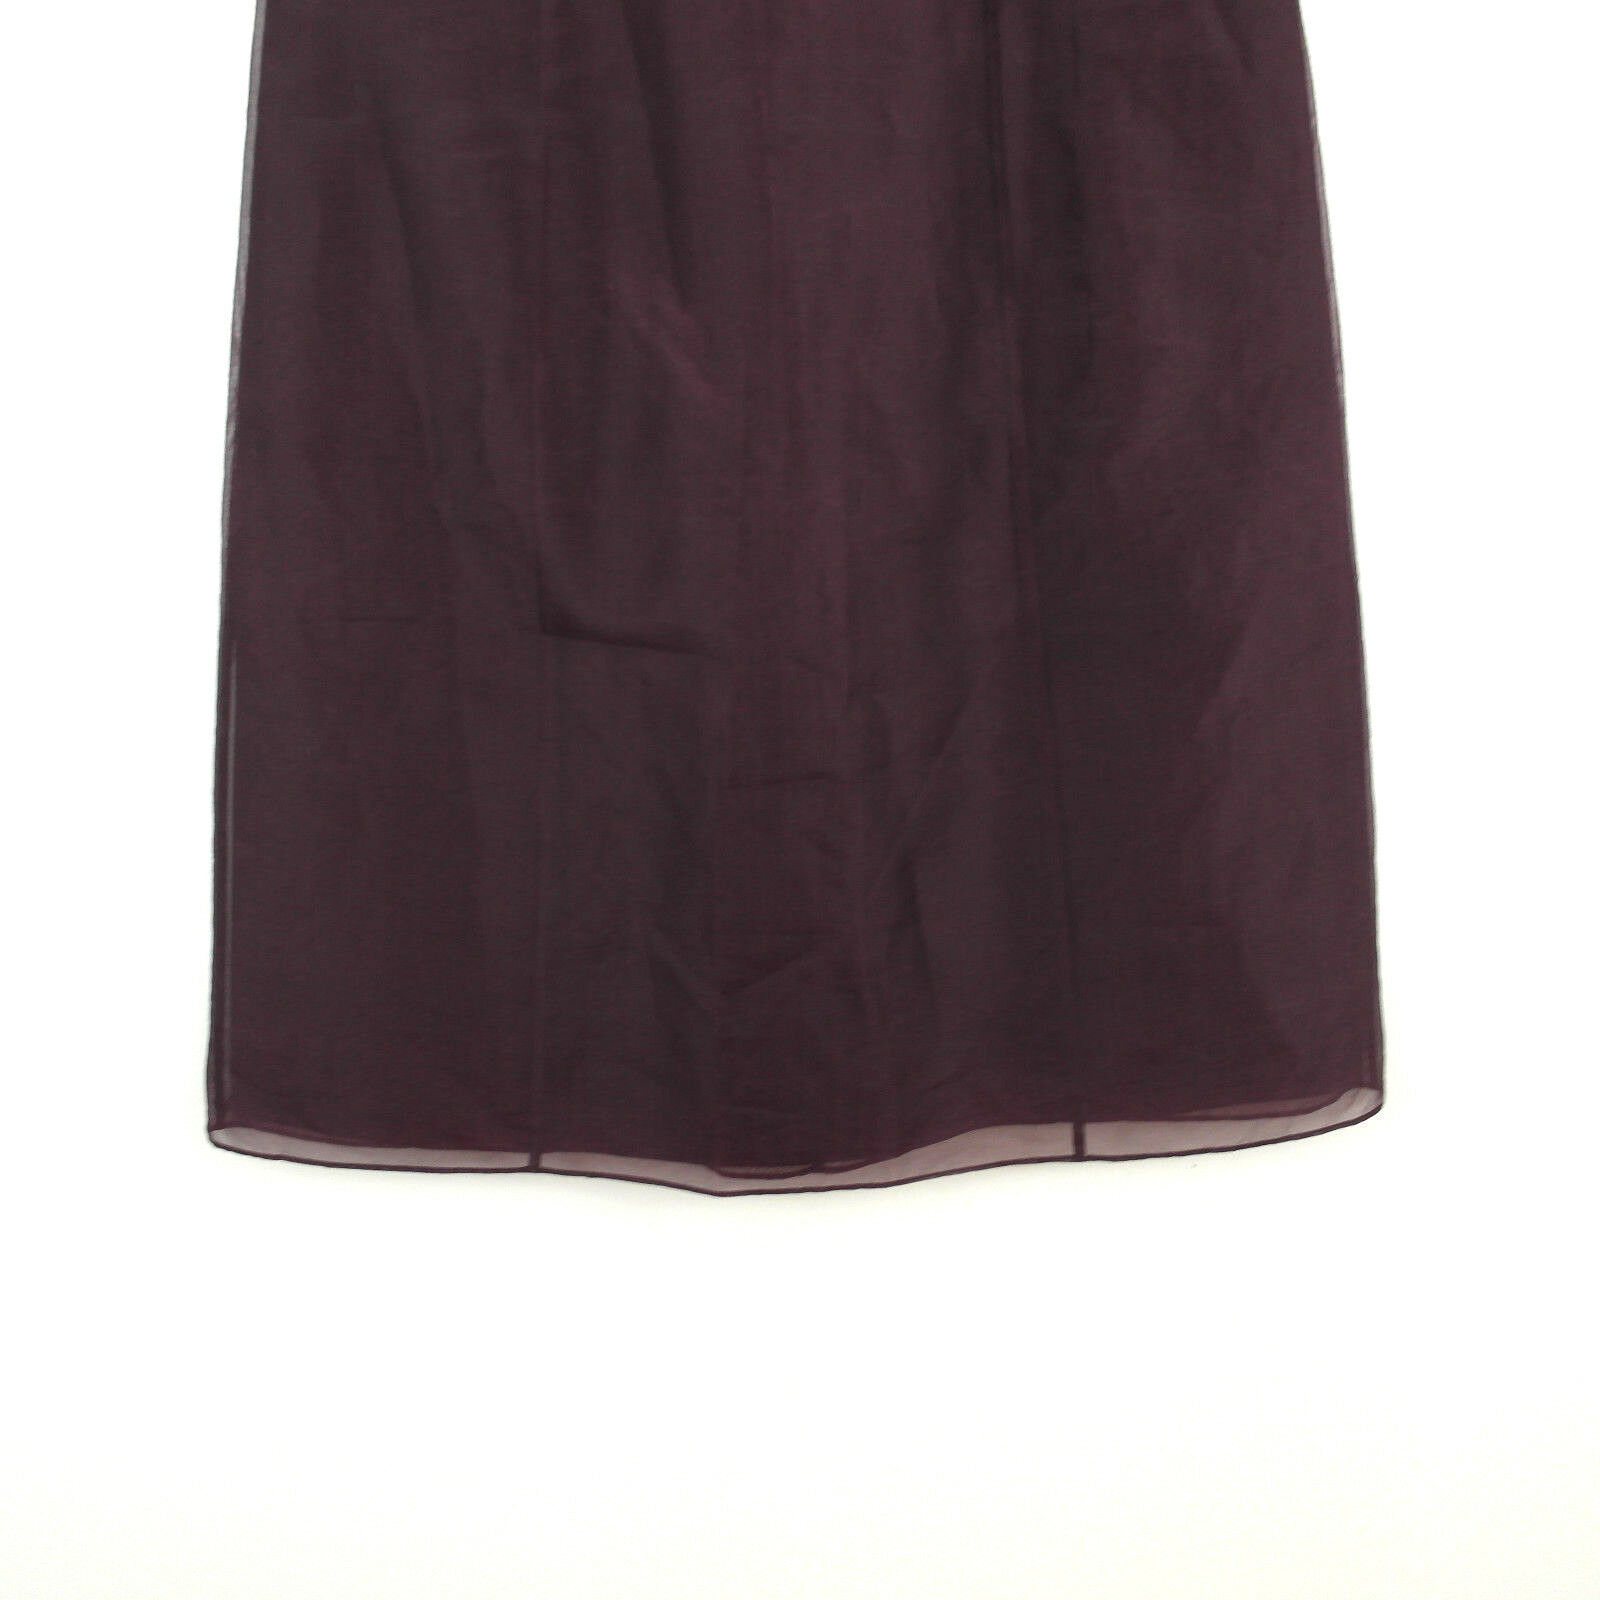 Ann Taylor Sleeveless Silk Dress Dress Dress Size 4 Embellished Empire Waist Plum e48d0f